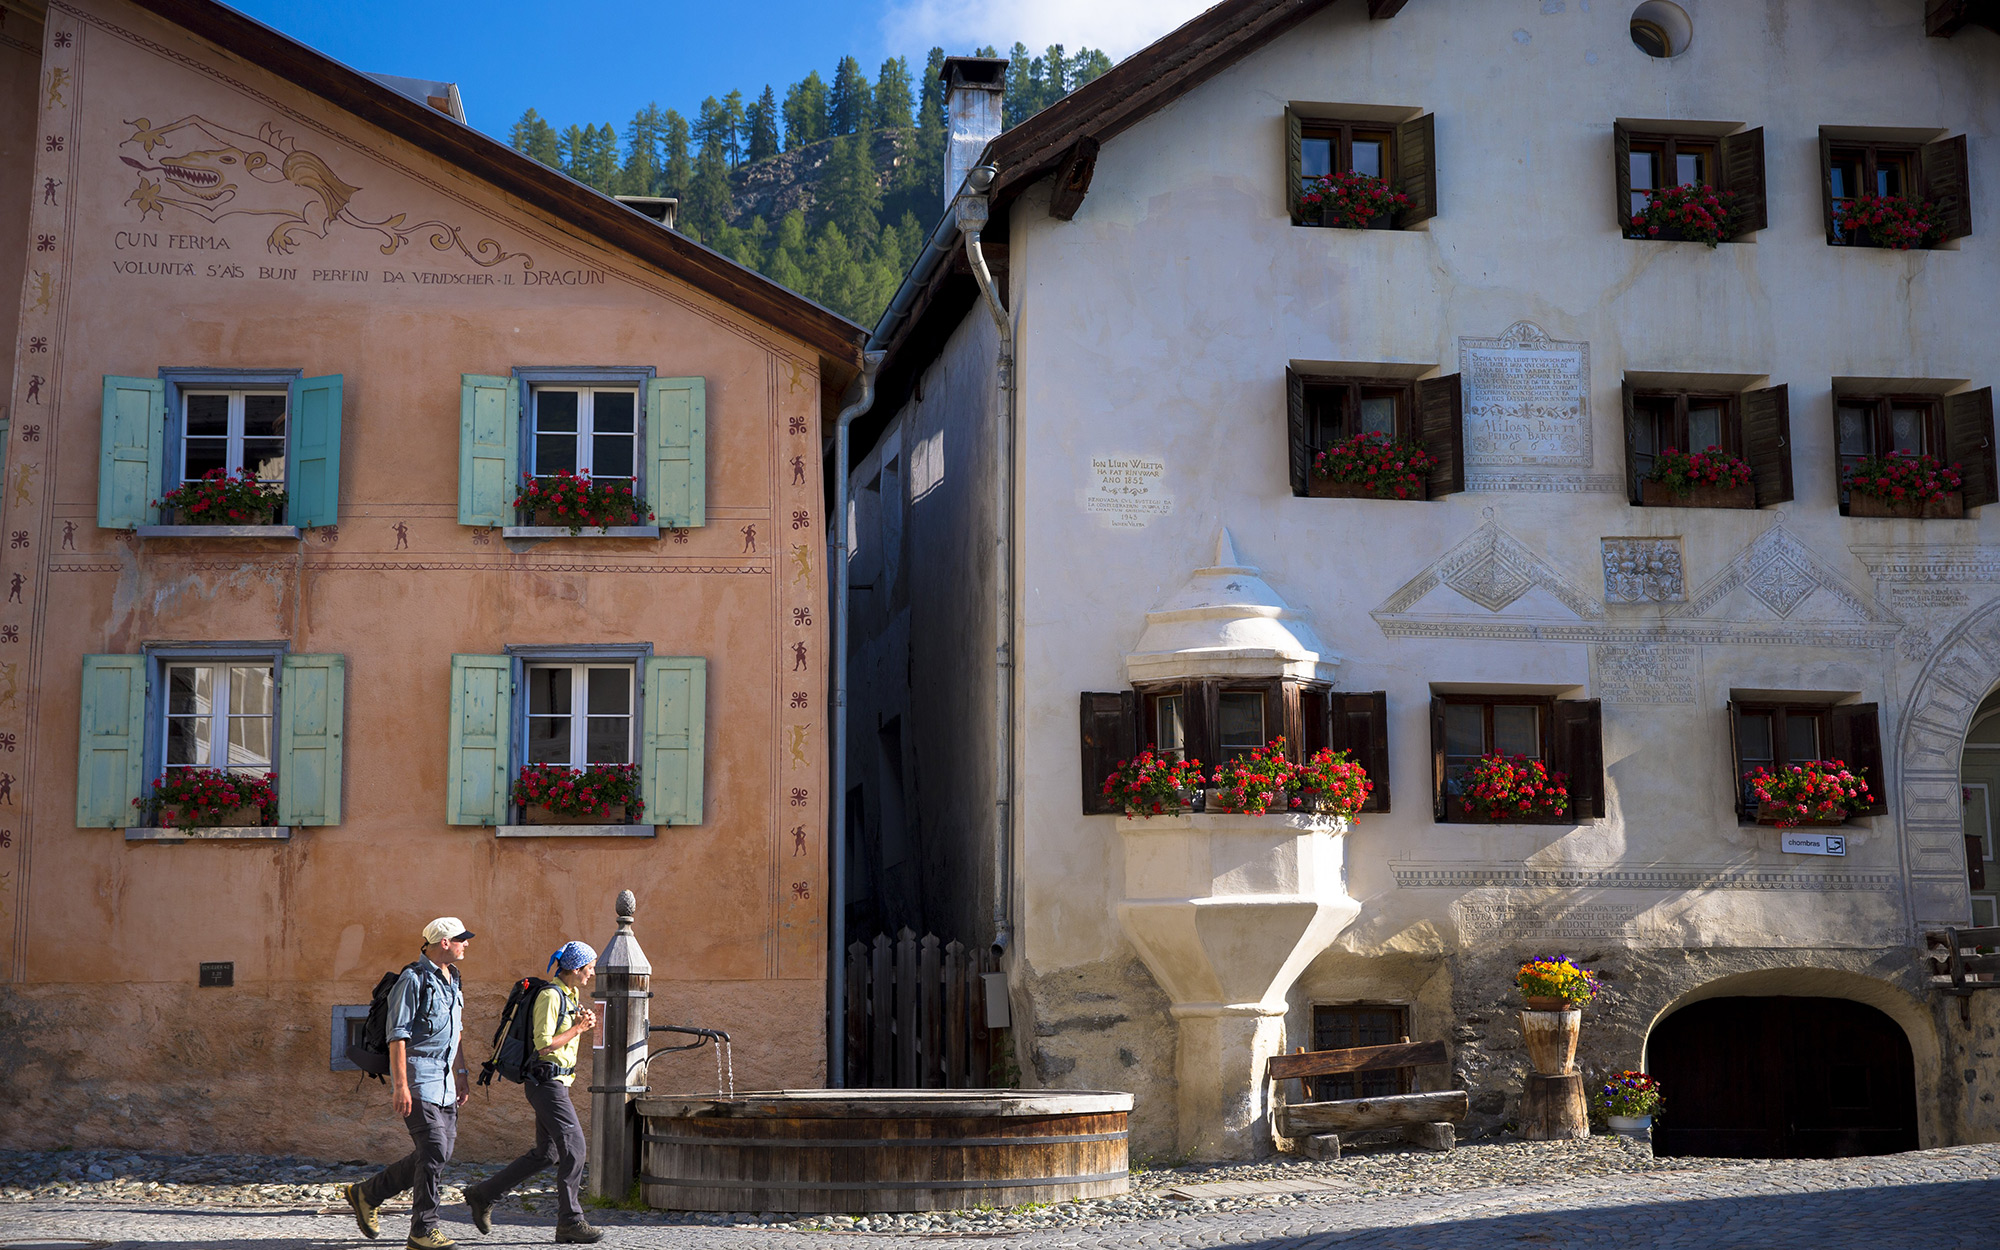 Europe's Most Beautiful Villages: Guarda, Switzerland